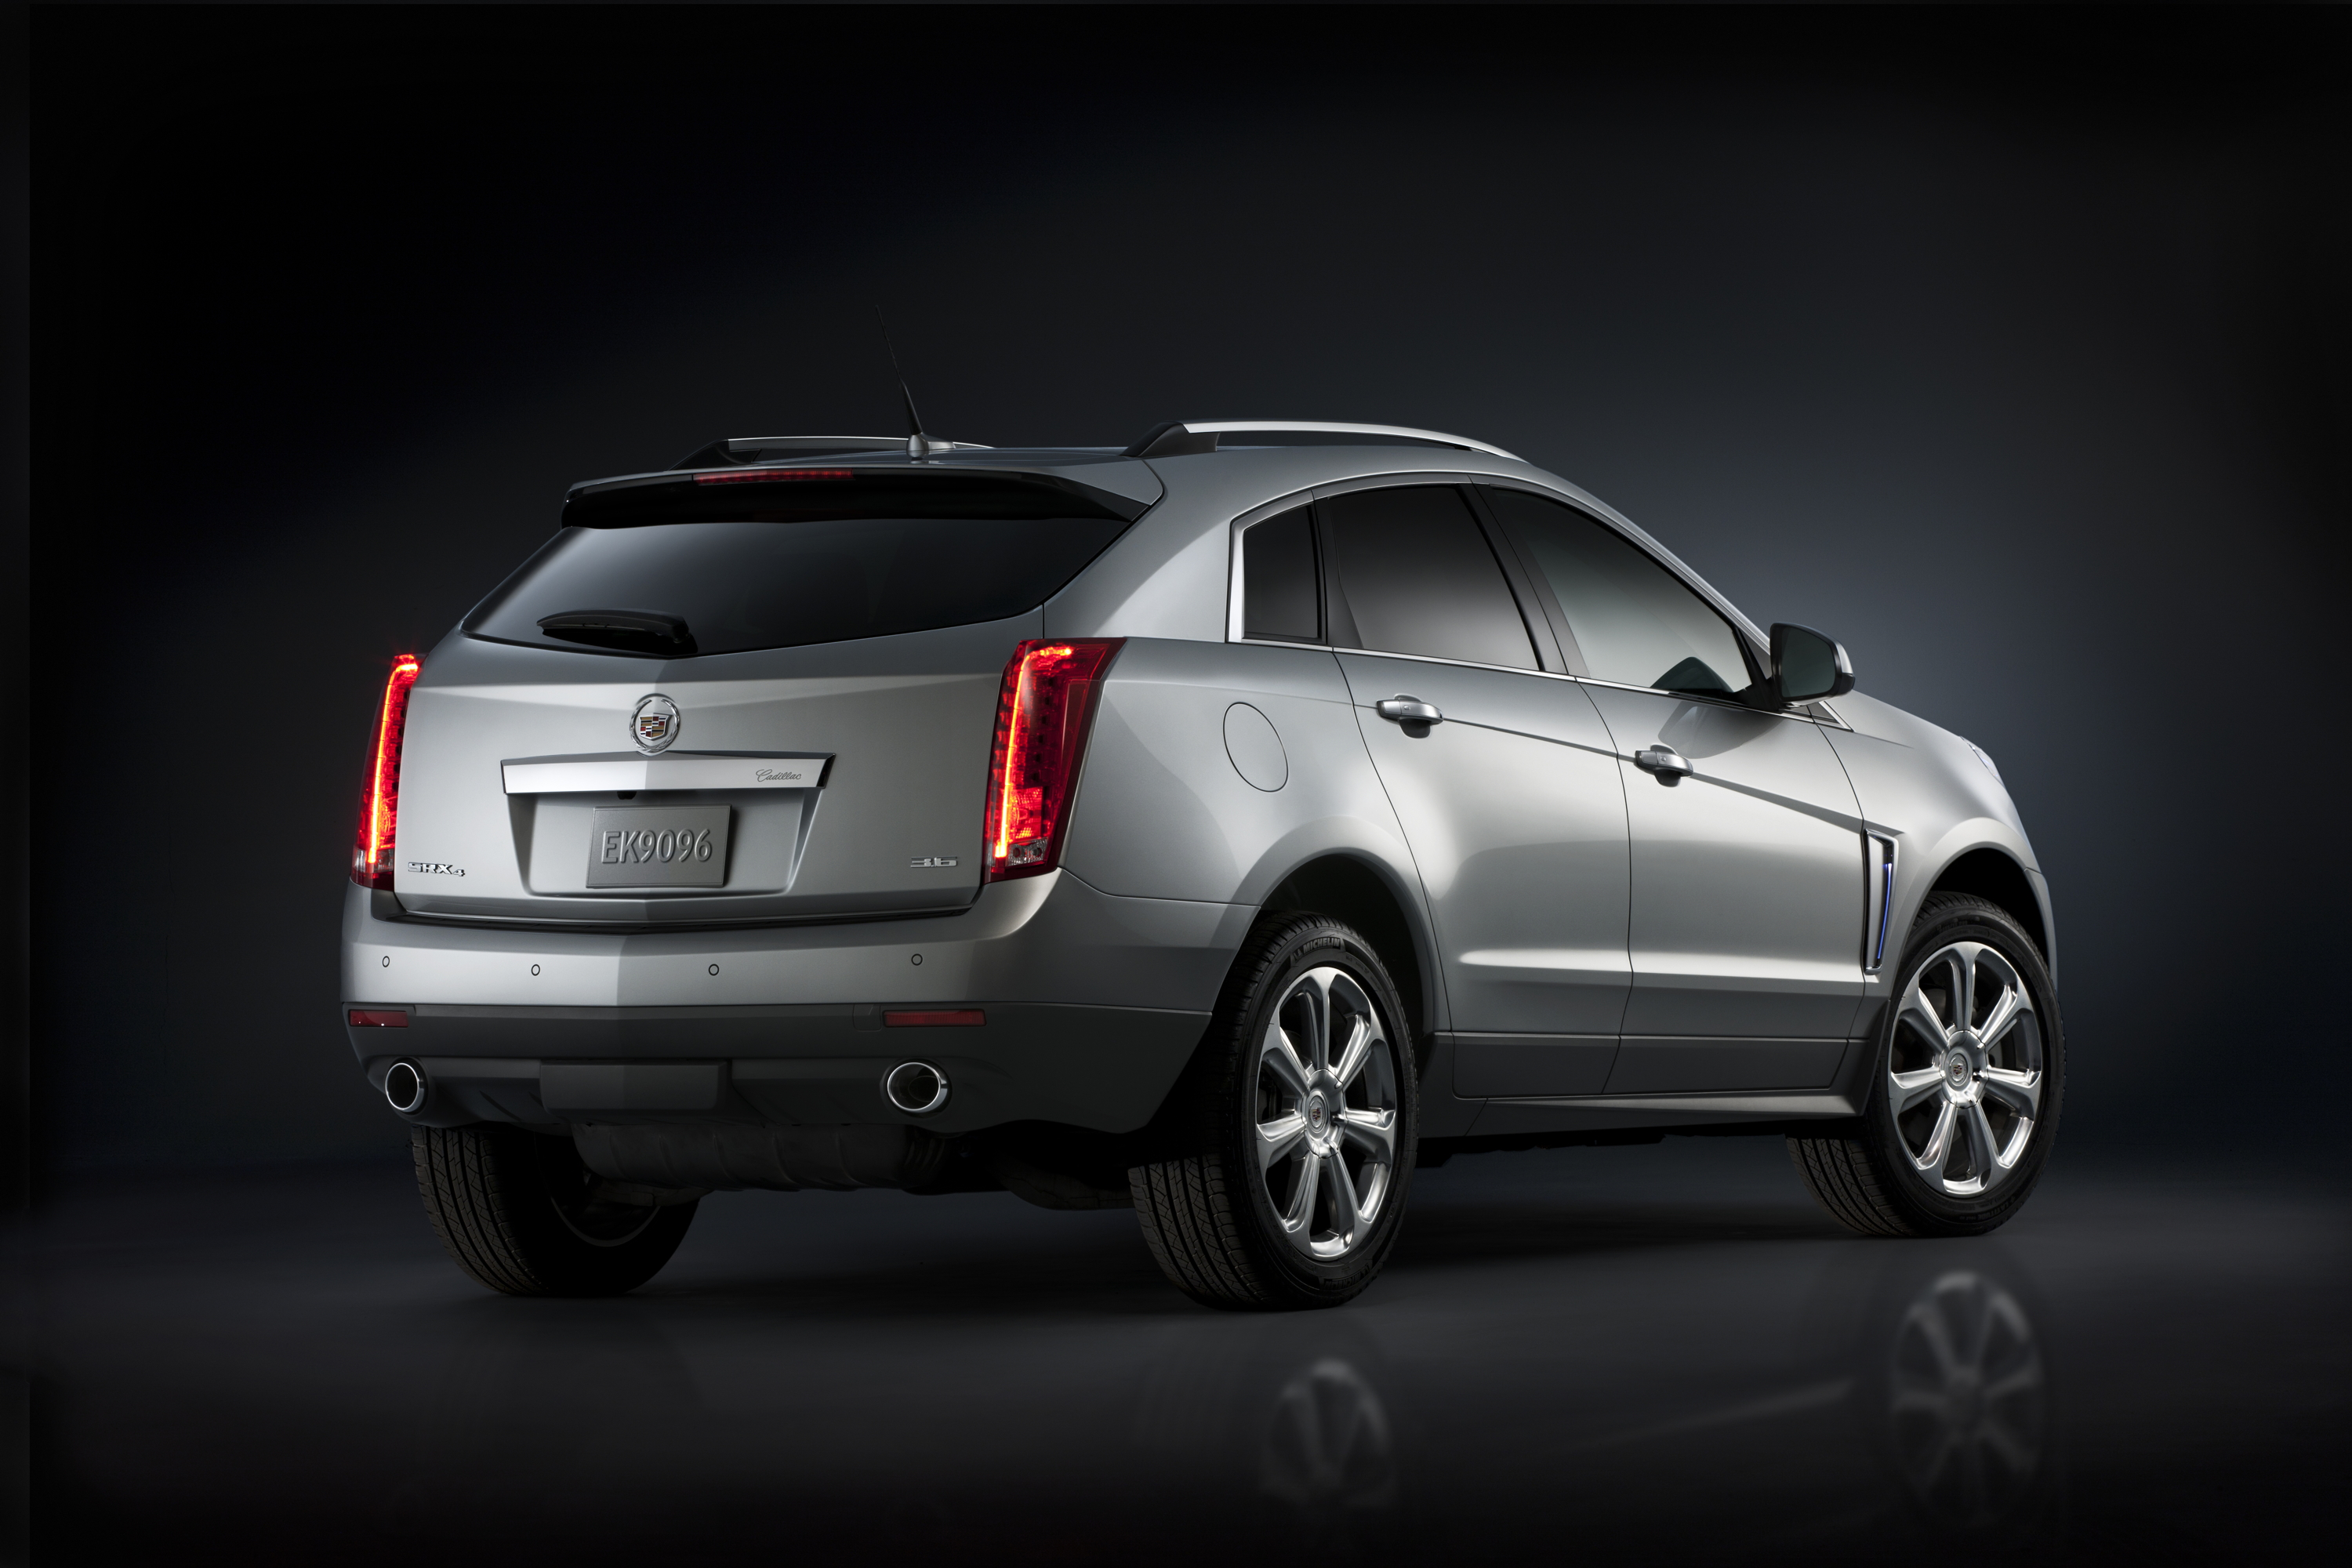 fight suv ready and for cadillac toned consumer stillb reports luxury srx